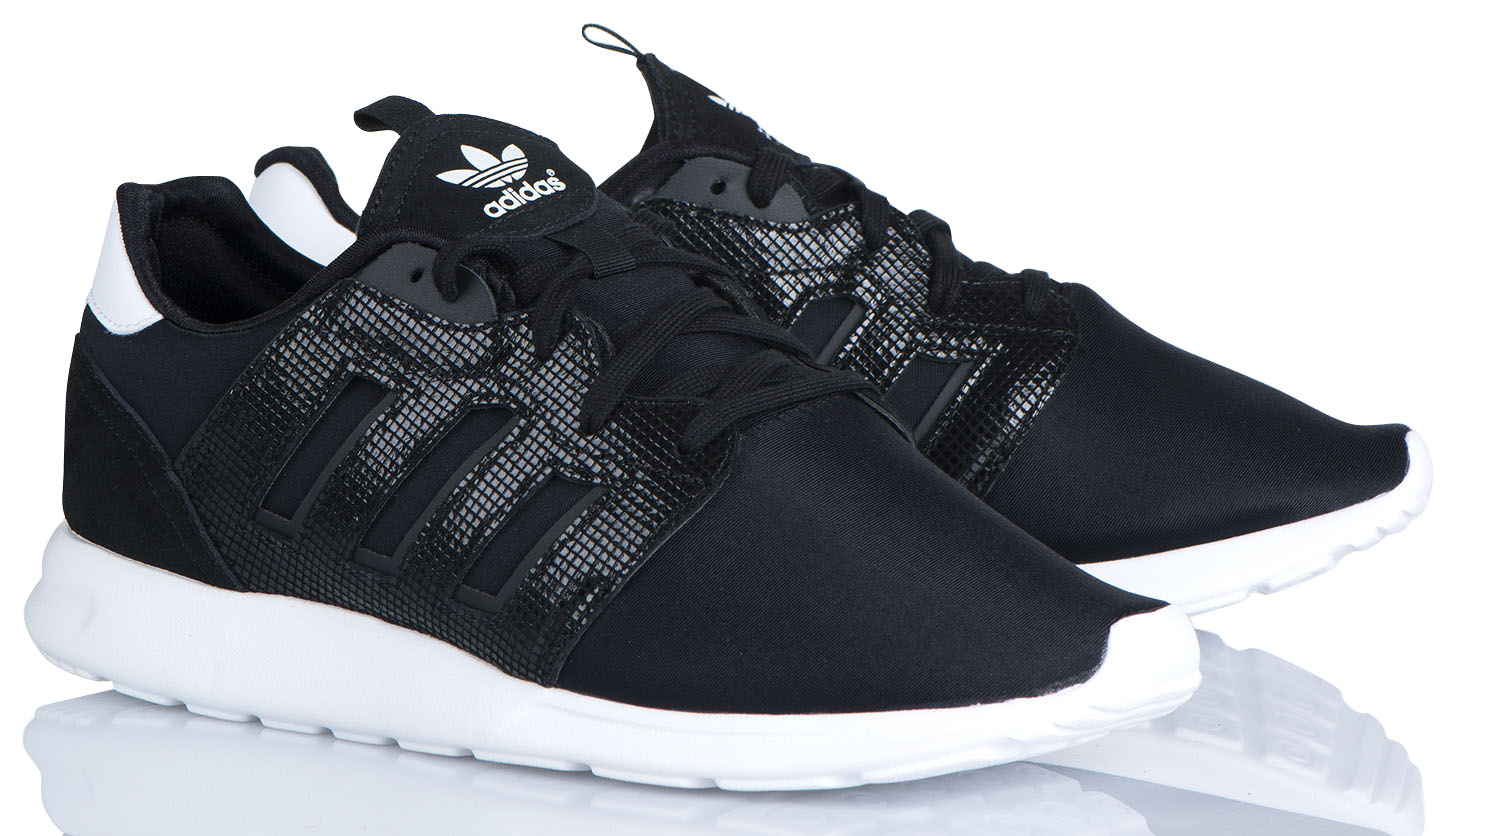 adidas zx 500 homme, Boutique Adidas Zx 500 Homme AZX522